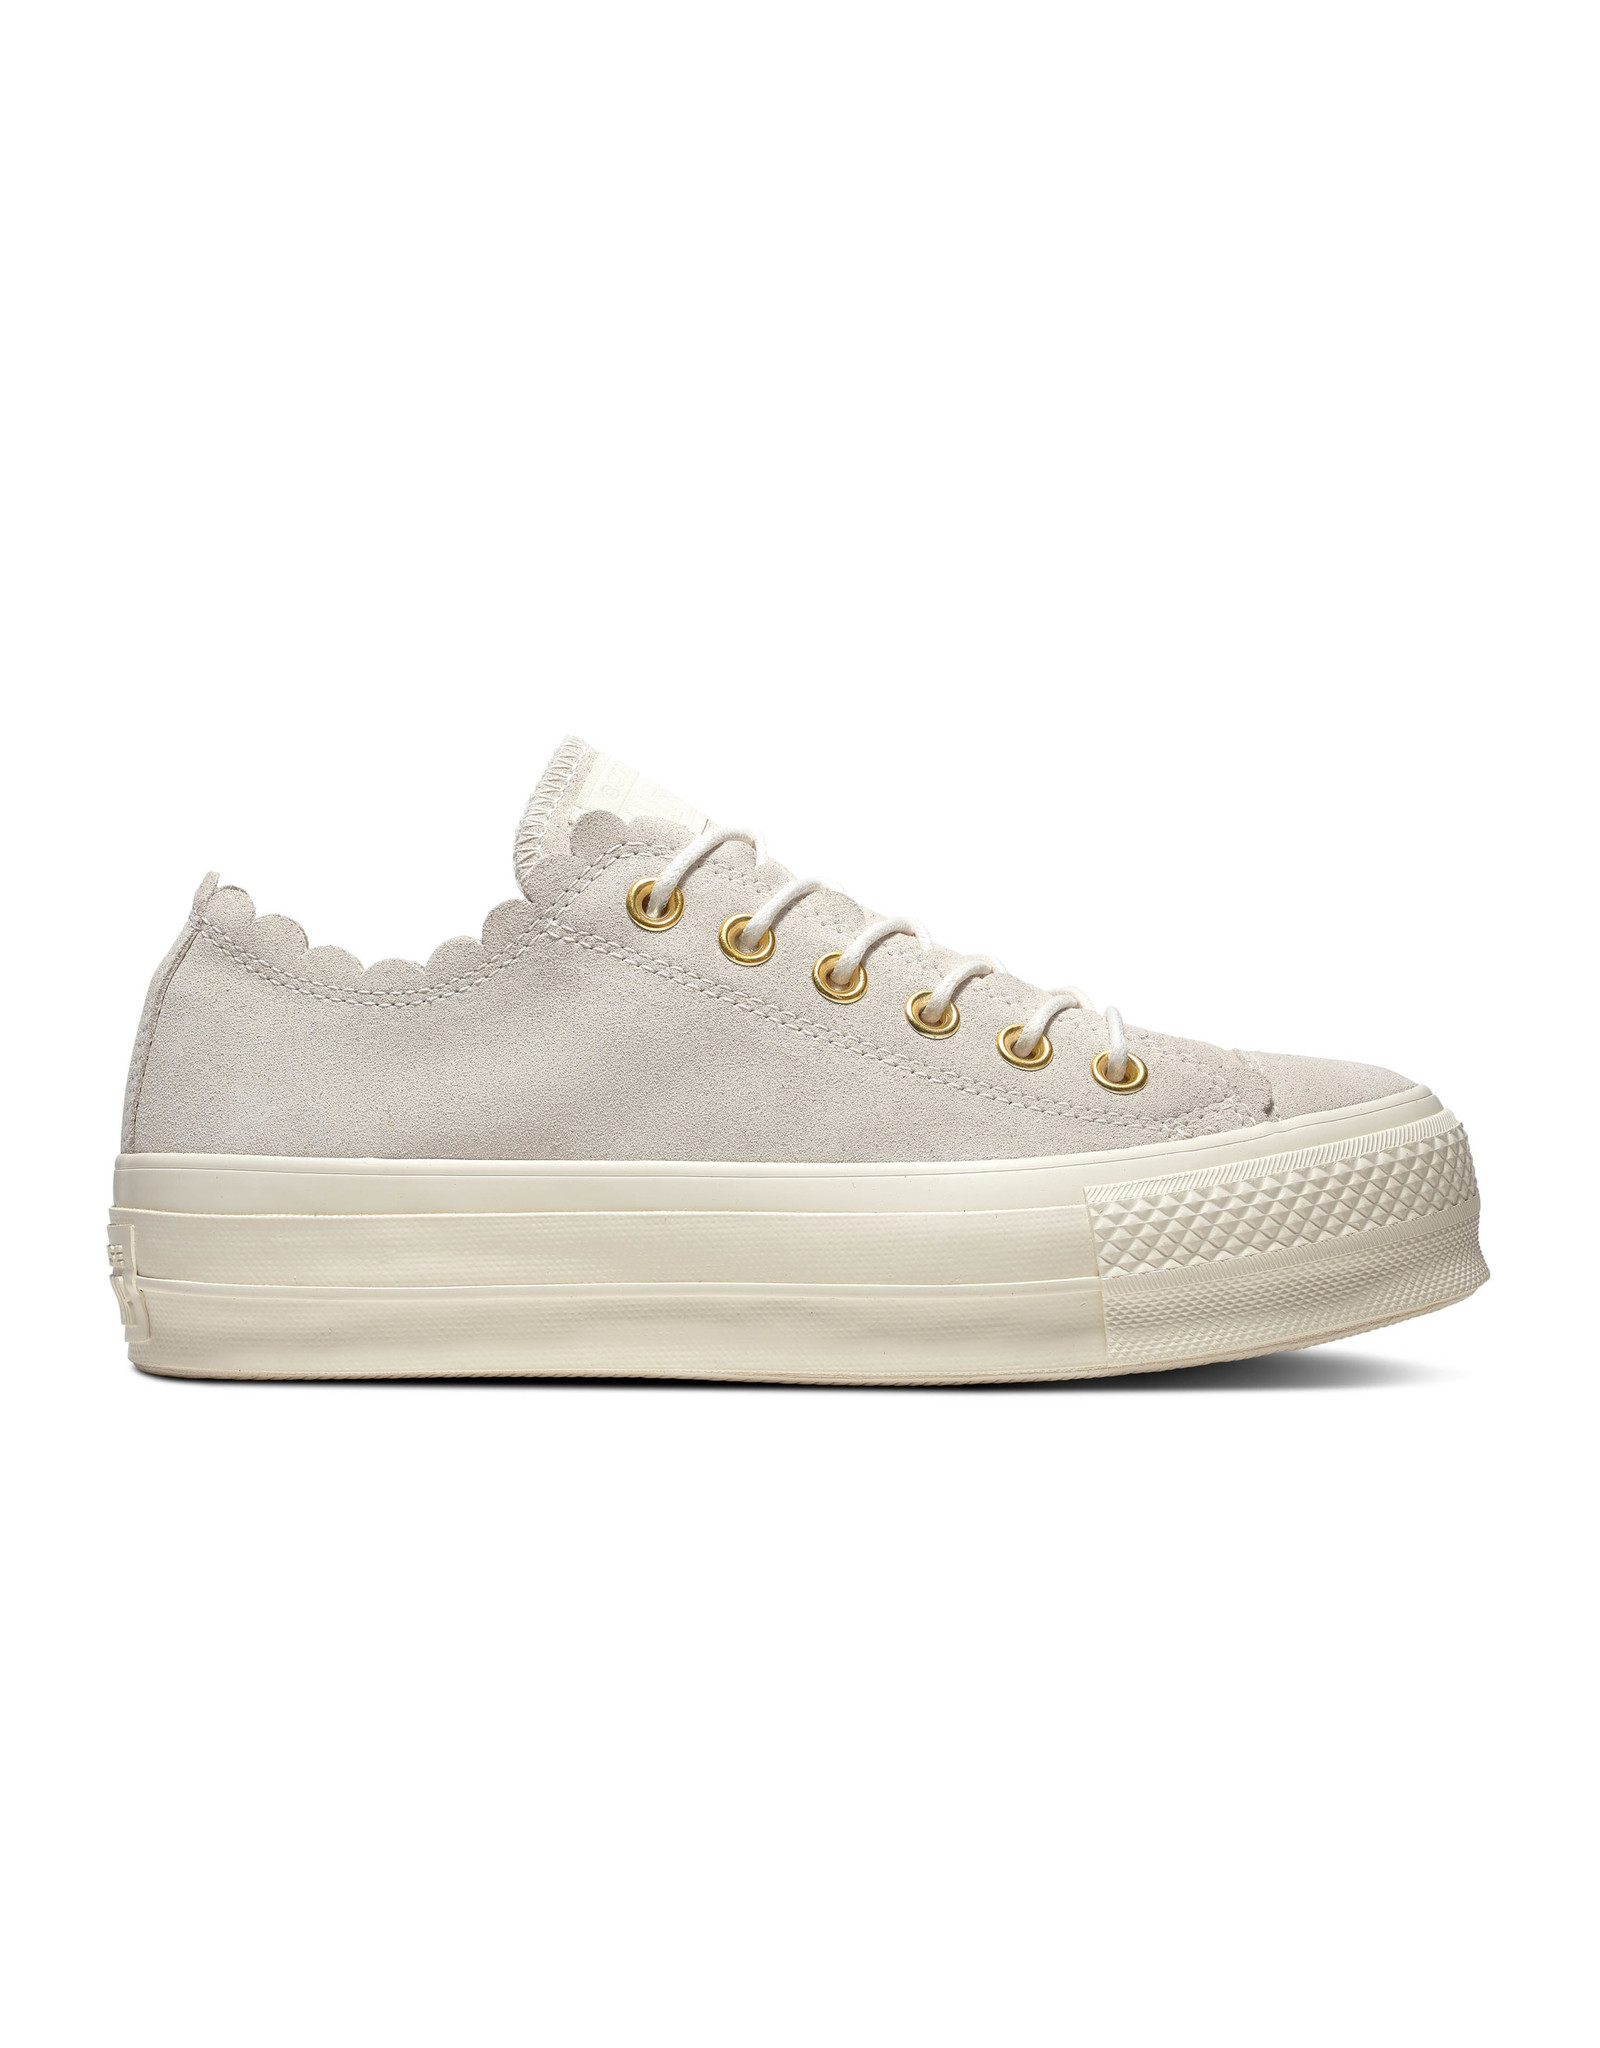 CONVERSE CHUCK TAYLOR ALL STAR LIFT OX EGRET/GOLD/EGRET C13LE-563498C